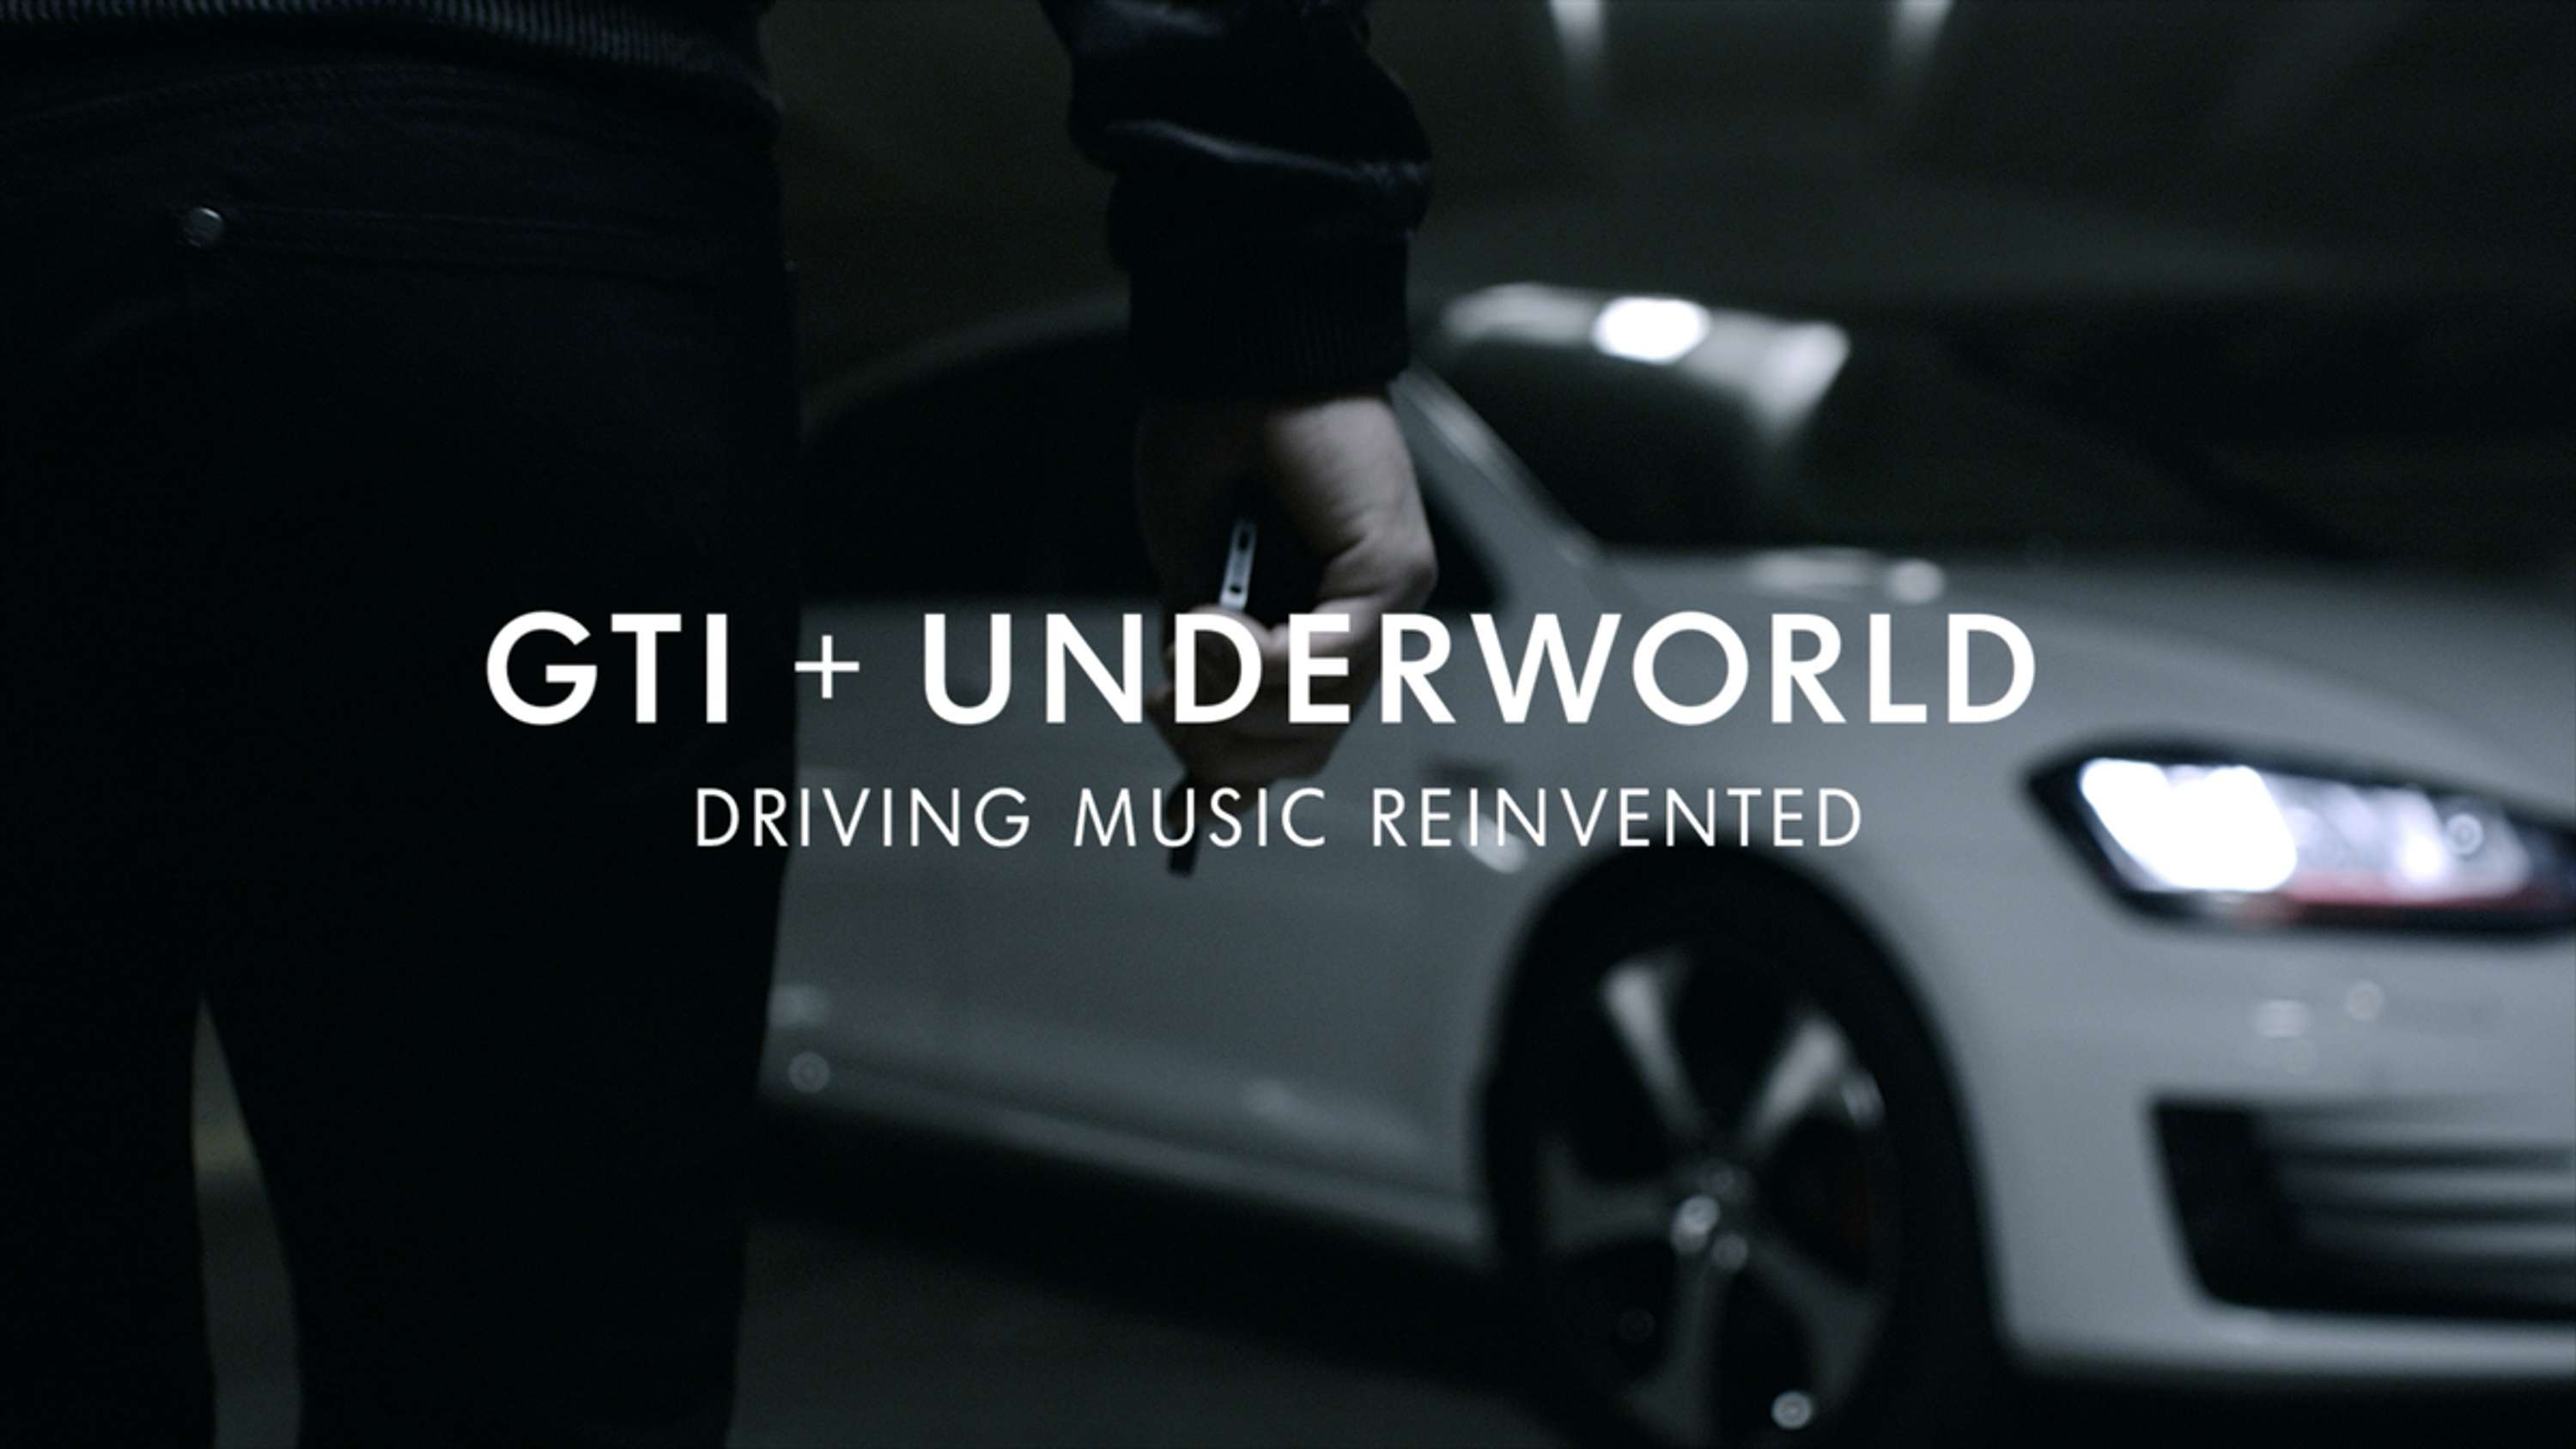 GTI & Underworld #PlayTheRoad | The Dots